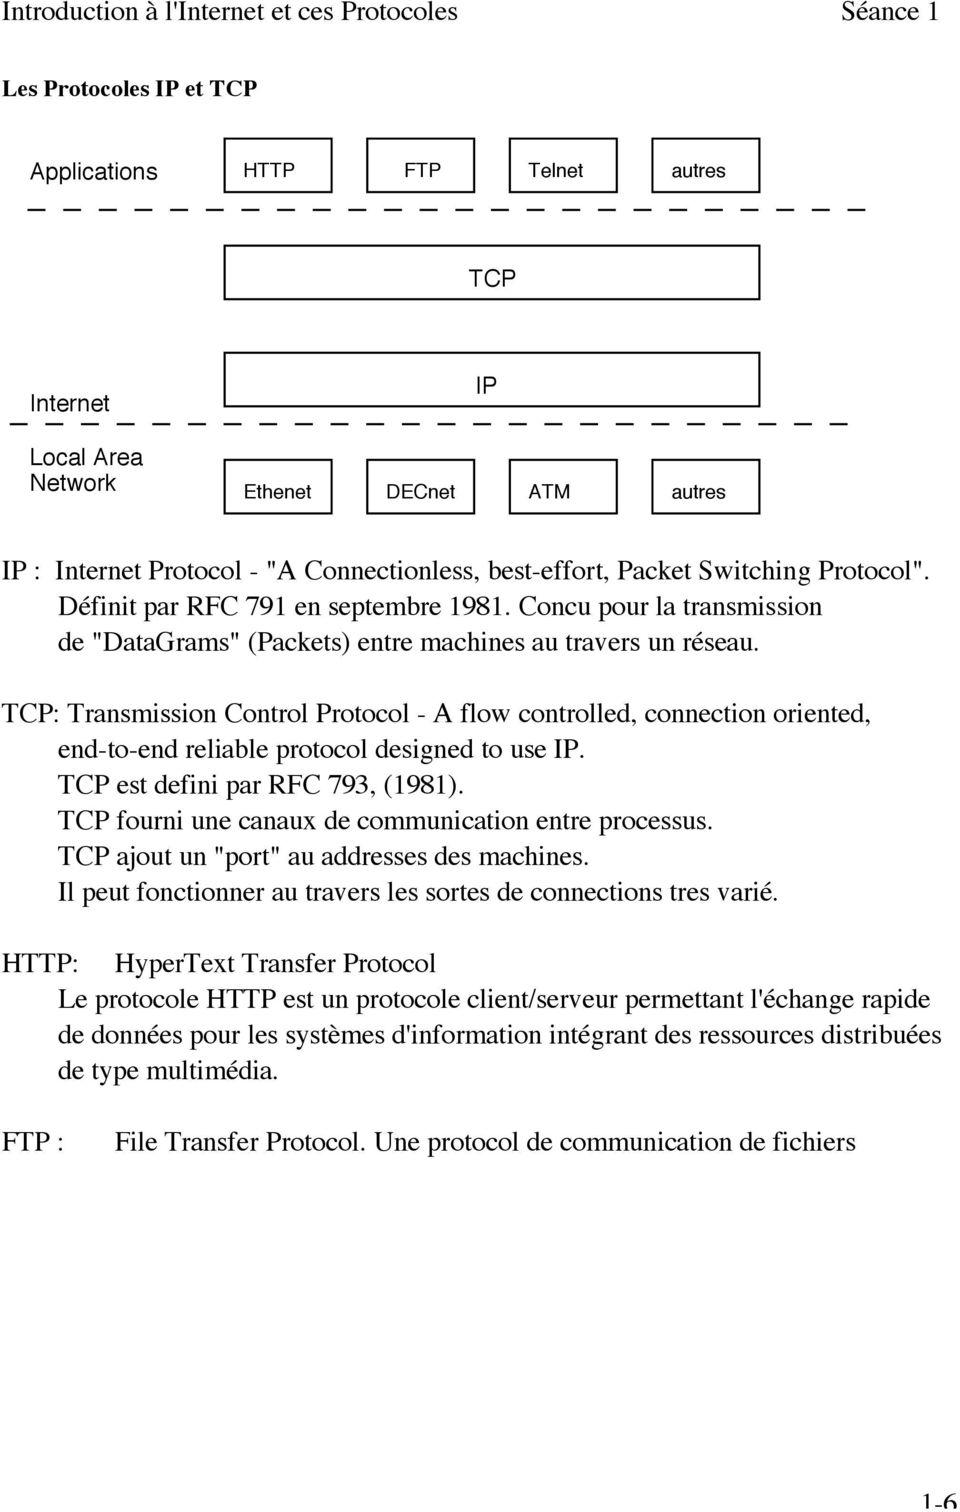 TCP: Transmission Control Protocol - A flow controlled, connection oriented, end-to-end reliable protocol designed to use IP. TCP est defini par RFC 793, (1981).